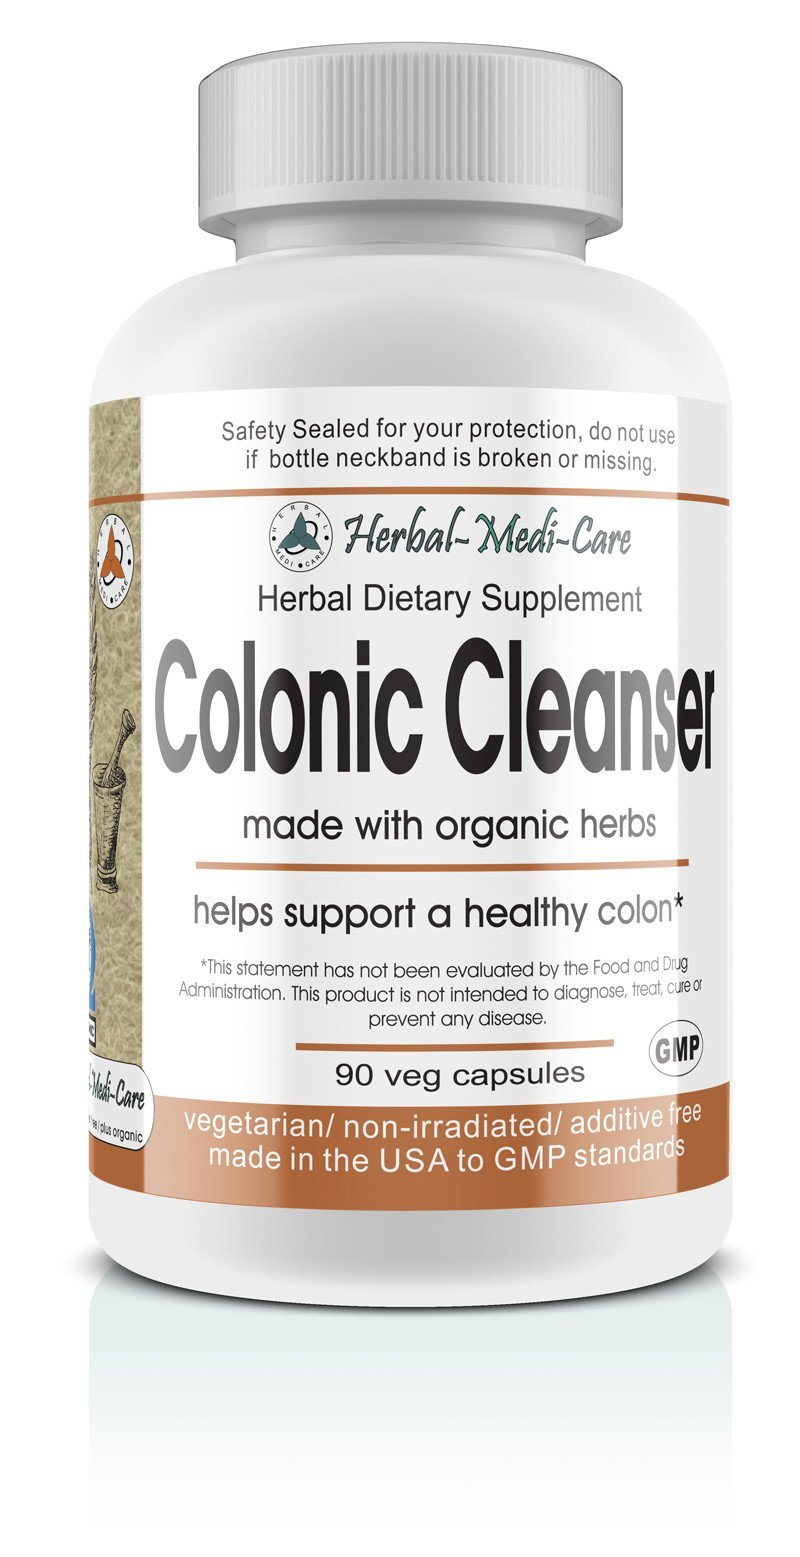 Herbal-Medi-Care Whole Food Colonic Cleanser Vegetarian Capsules; 90-Count, Made with Organic - Herbal-Medi-Care Whole Food Colonic Cleanser Vegetarian Capsules; 90-Count, Made with Organic - Herbal-Medi-Care Whole Food Colonic Cleanser Vegetarian Capsules; 90-Count, Made with Organic